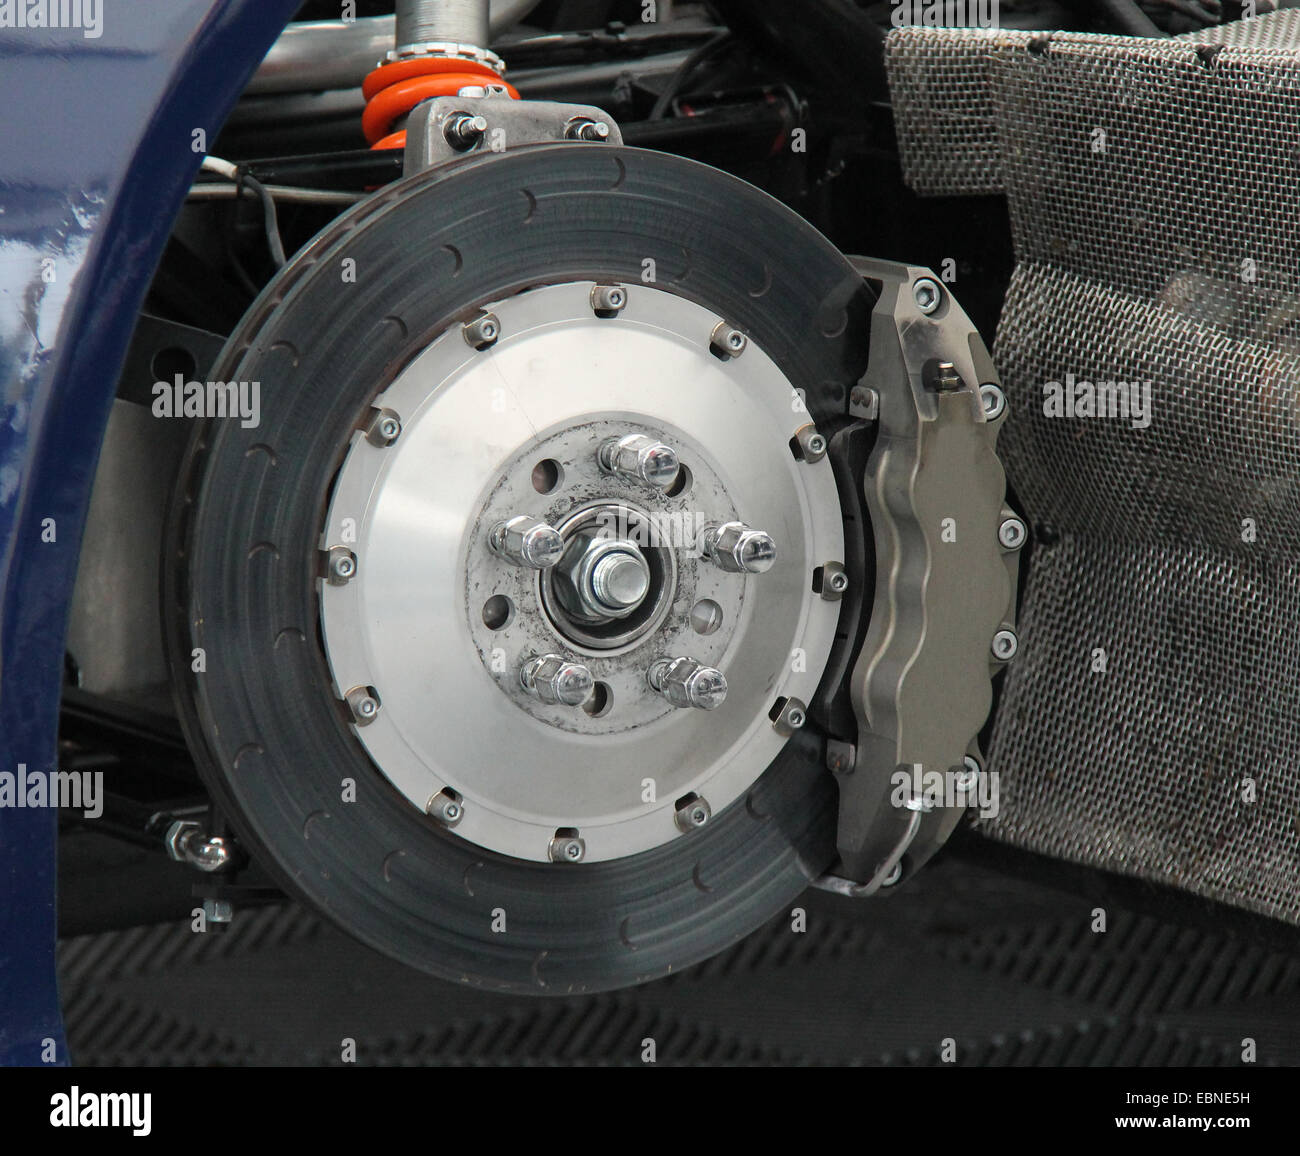 The Front Wheel Brake of a Fast Saloon Car. - Stock Image